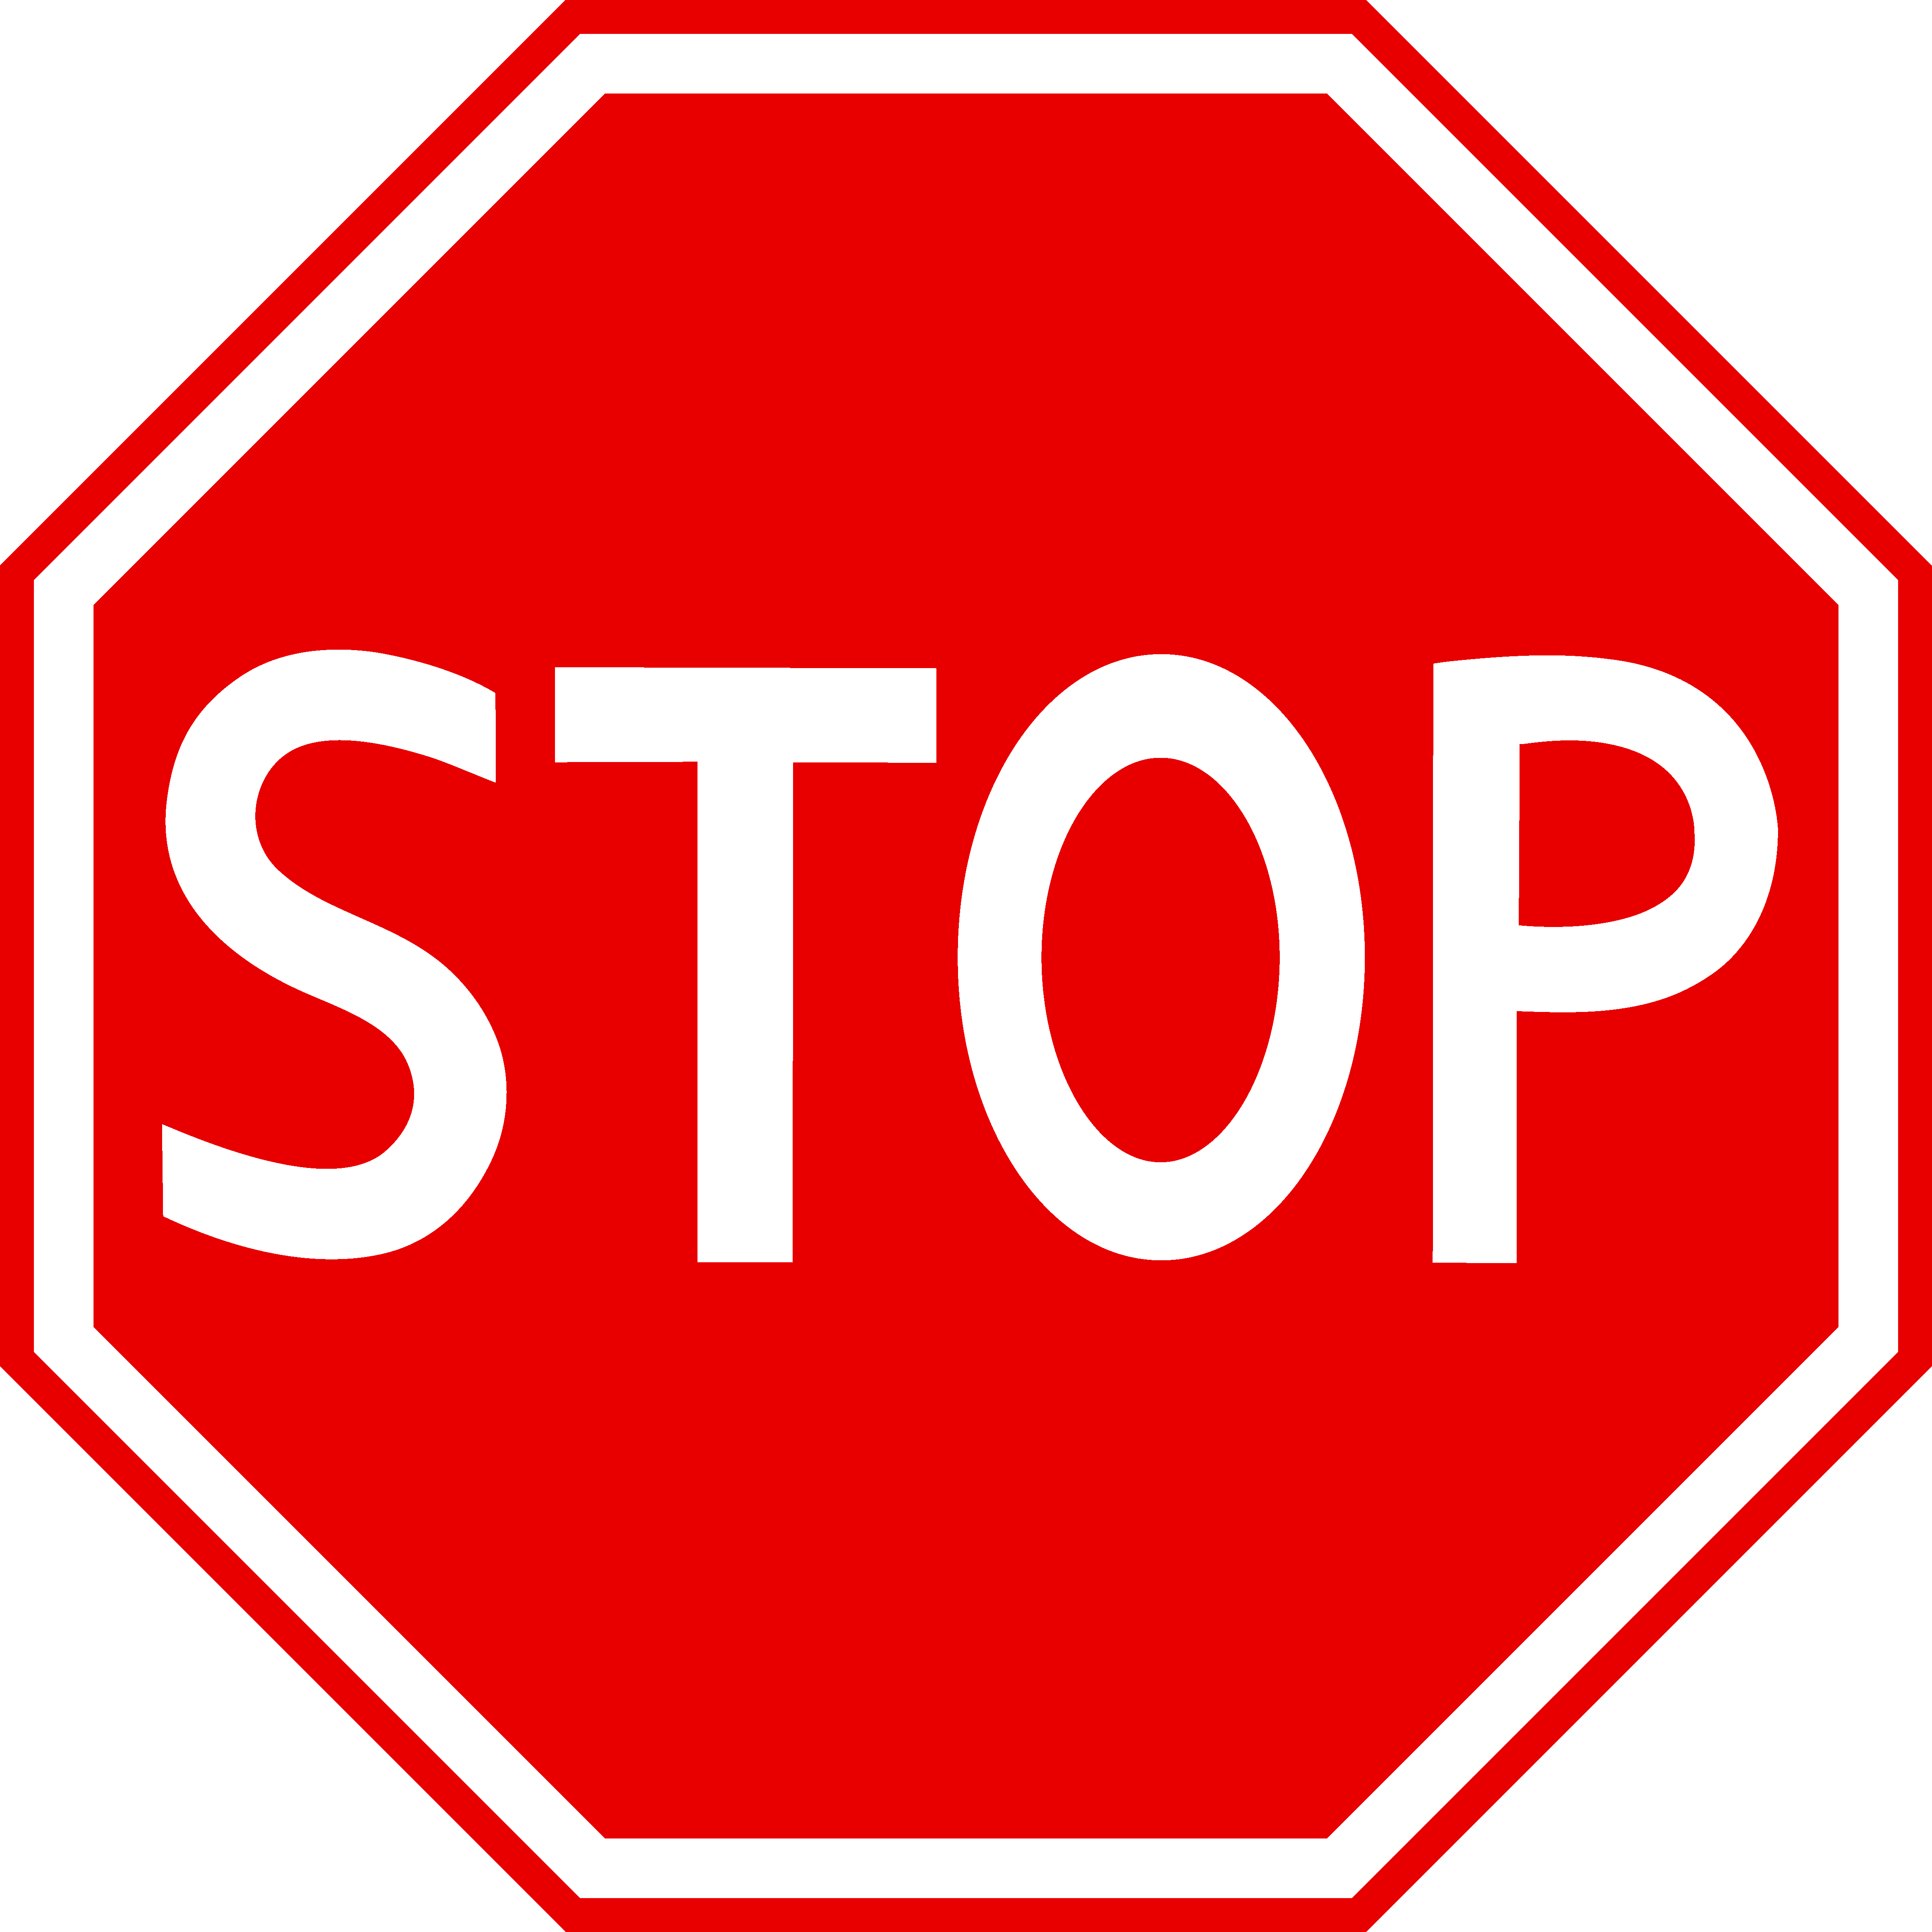 Library clipart sign Stop Clipart Red Free Sign